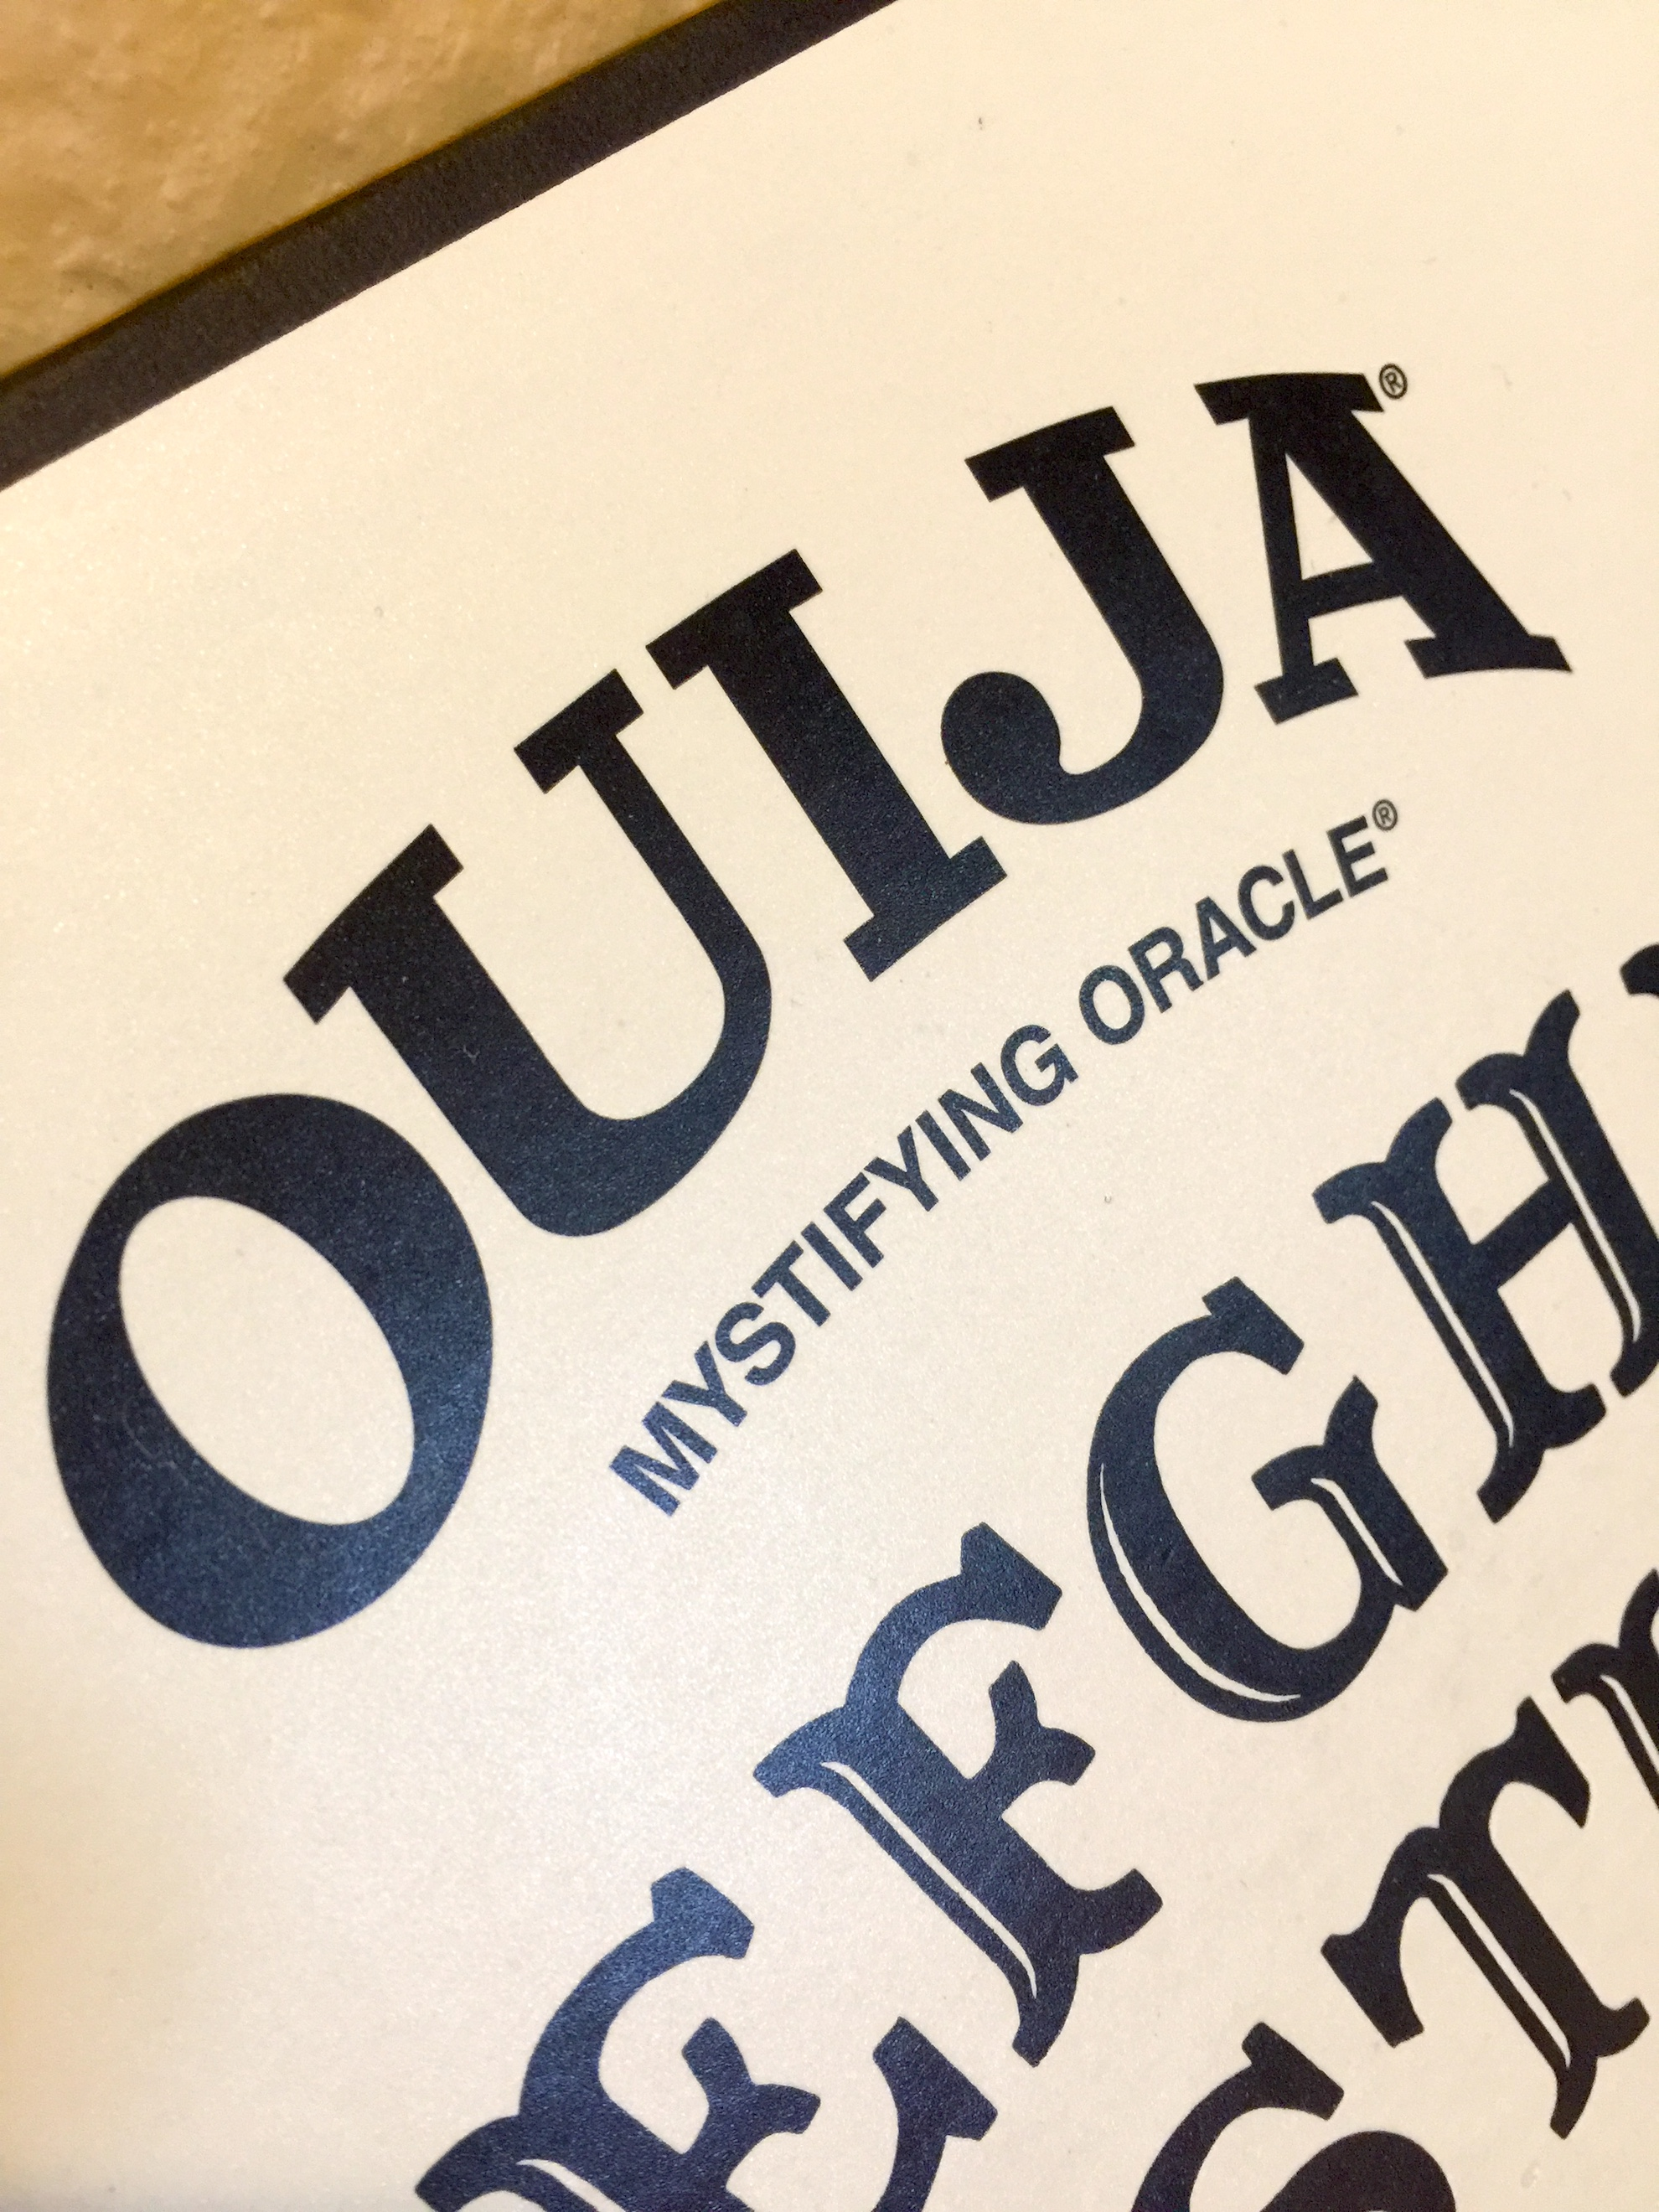 Solo Ouija: Is it Safe?